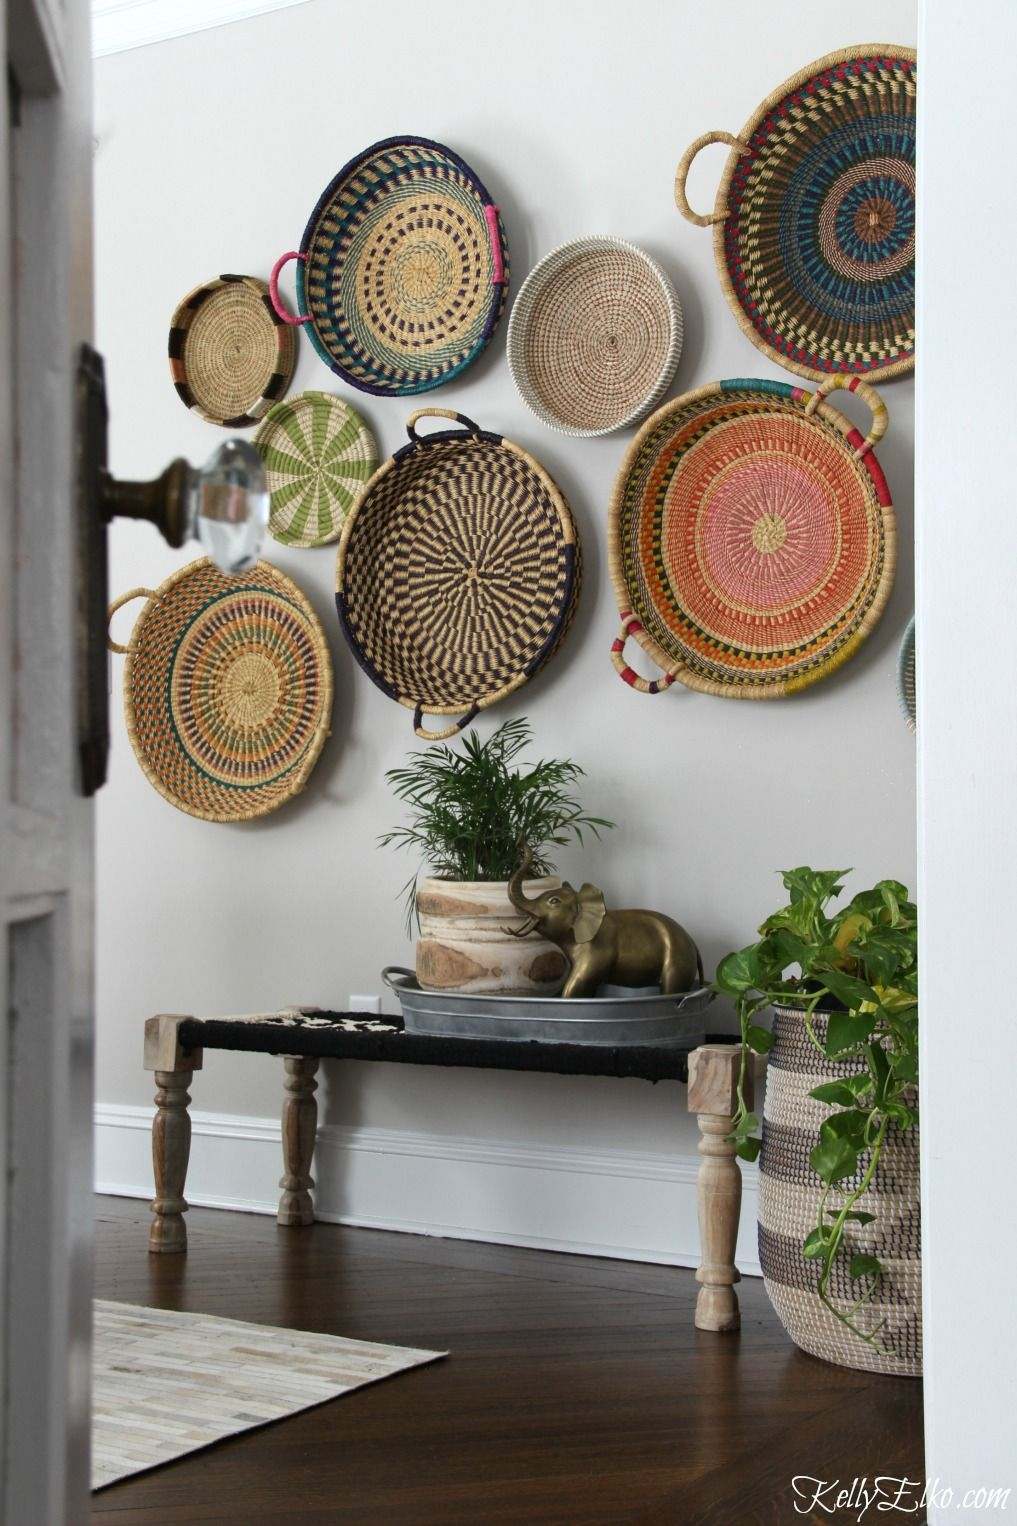 Colorful Basket Gallery Wall Wall Decor Living Room Boho Wall Decor Room Wall Decor